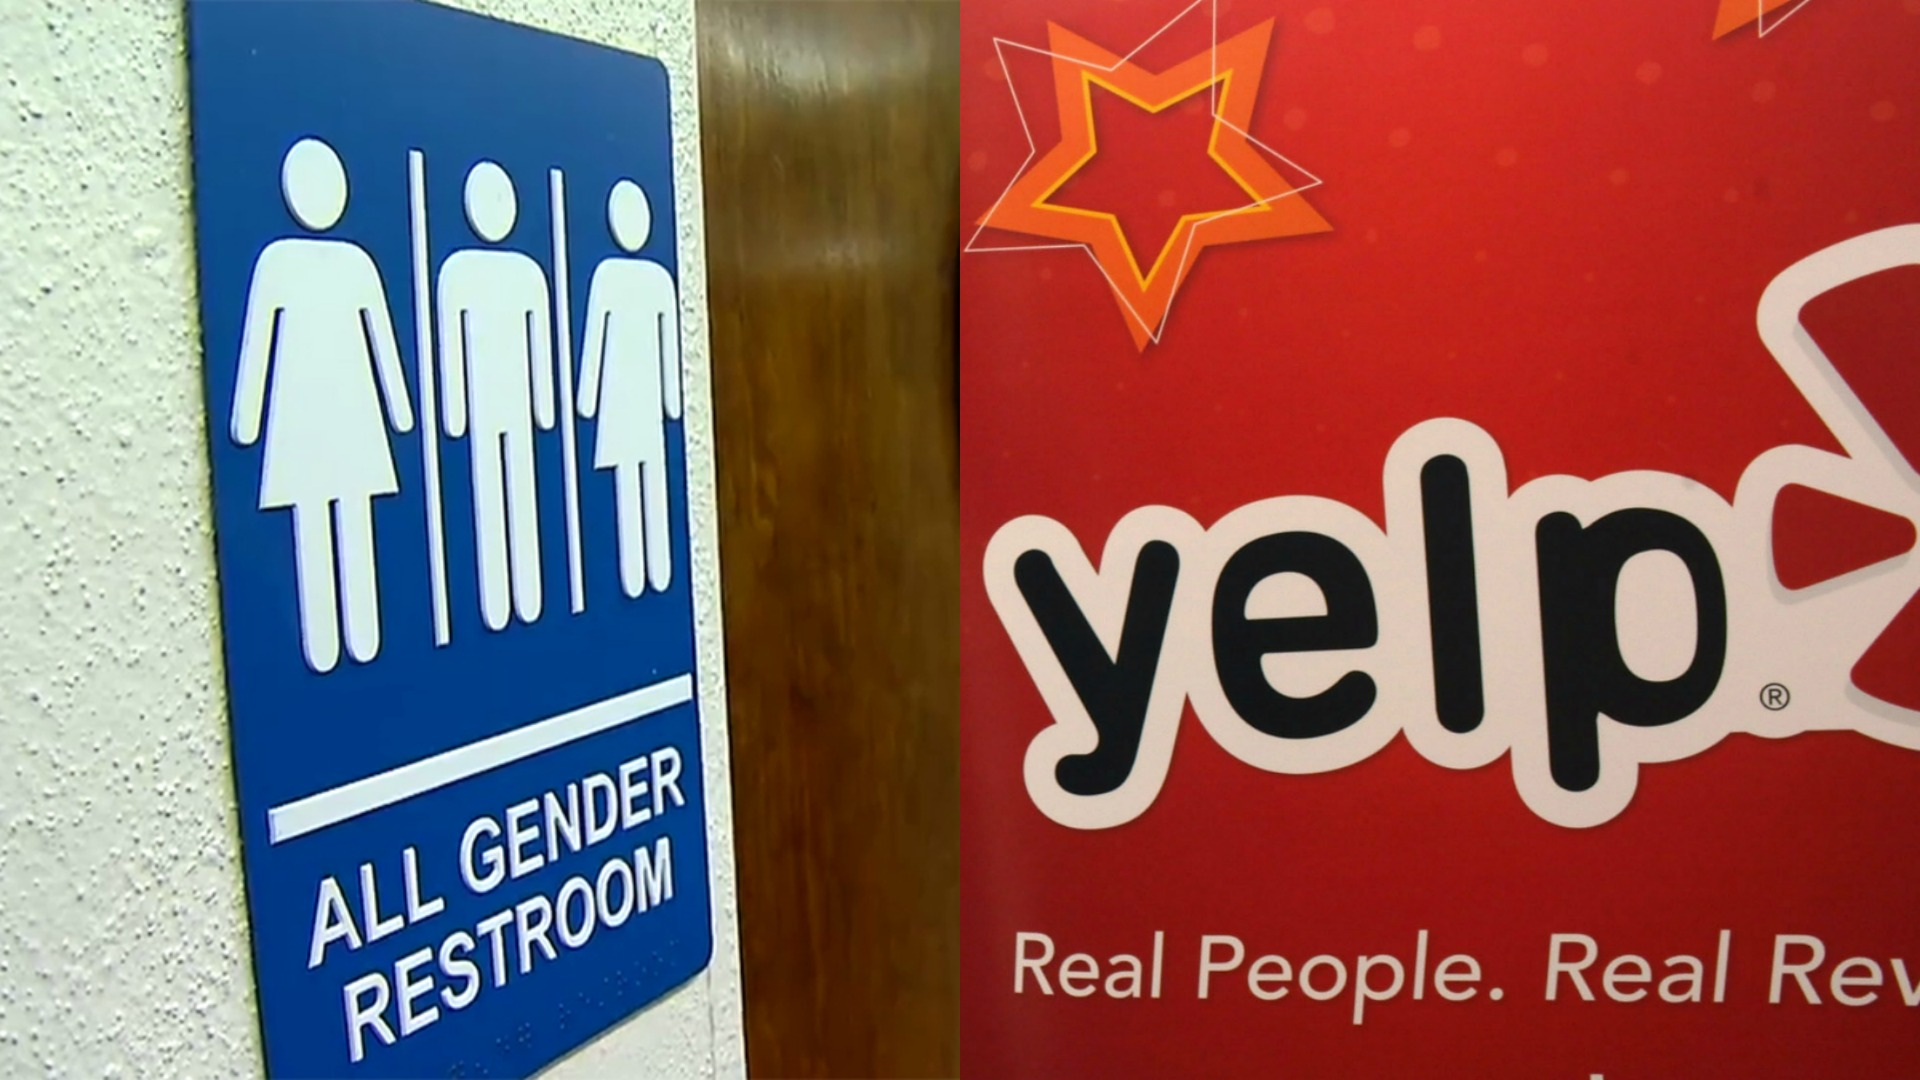 Yelp will now allow users to identify whether or not businesses have gender-neutral bathrooms.